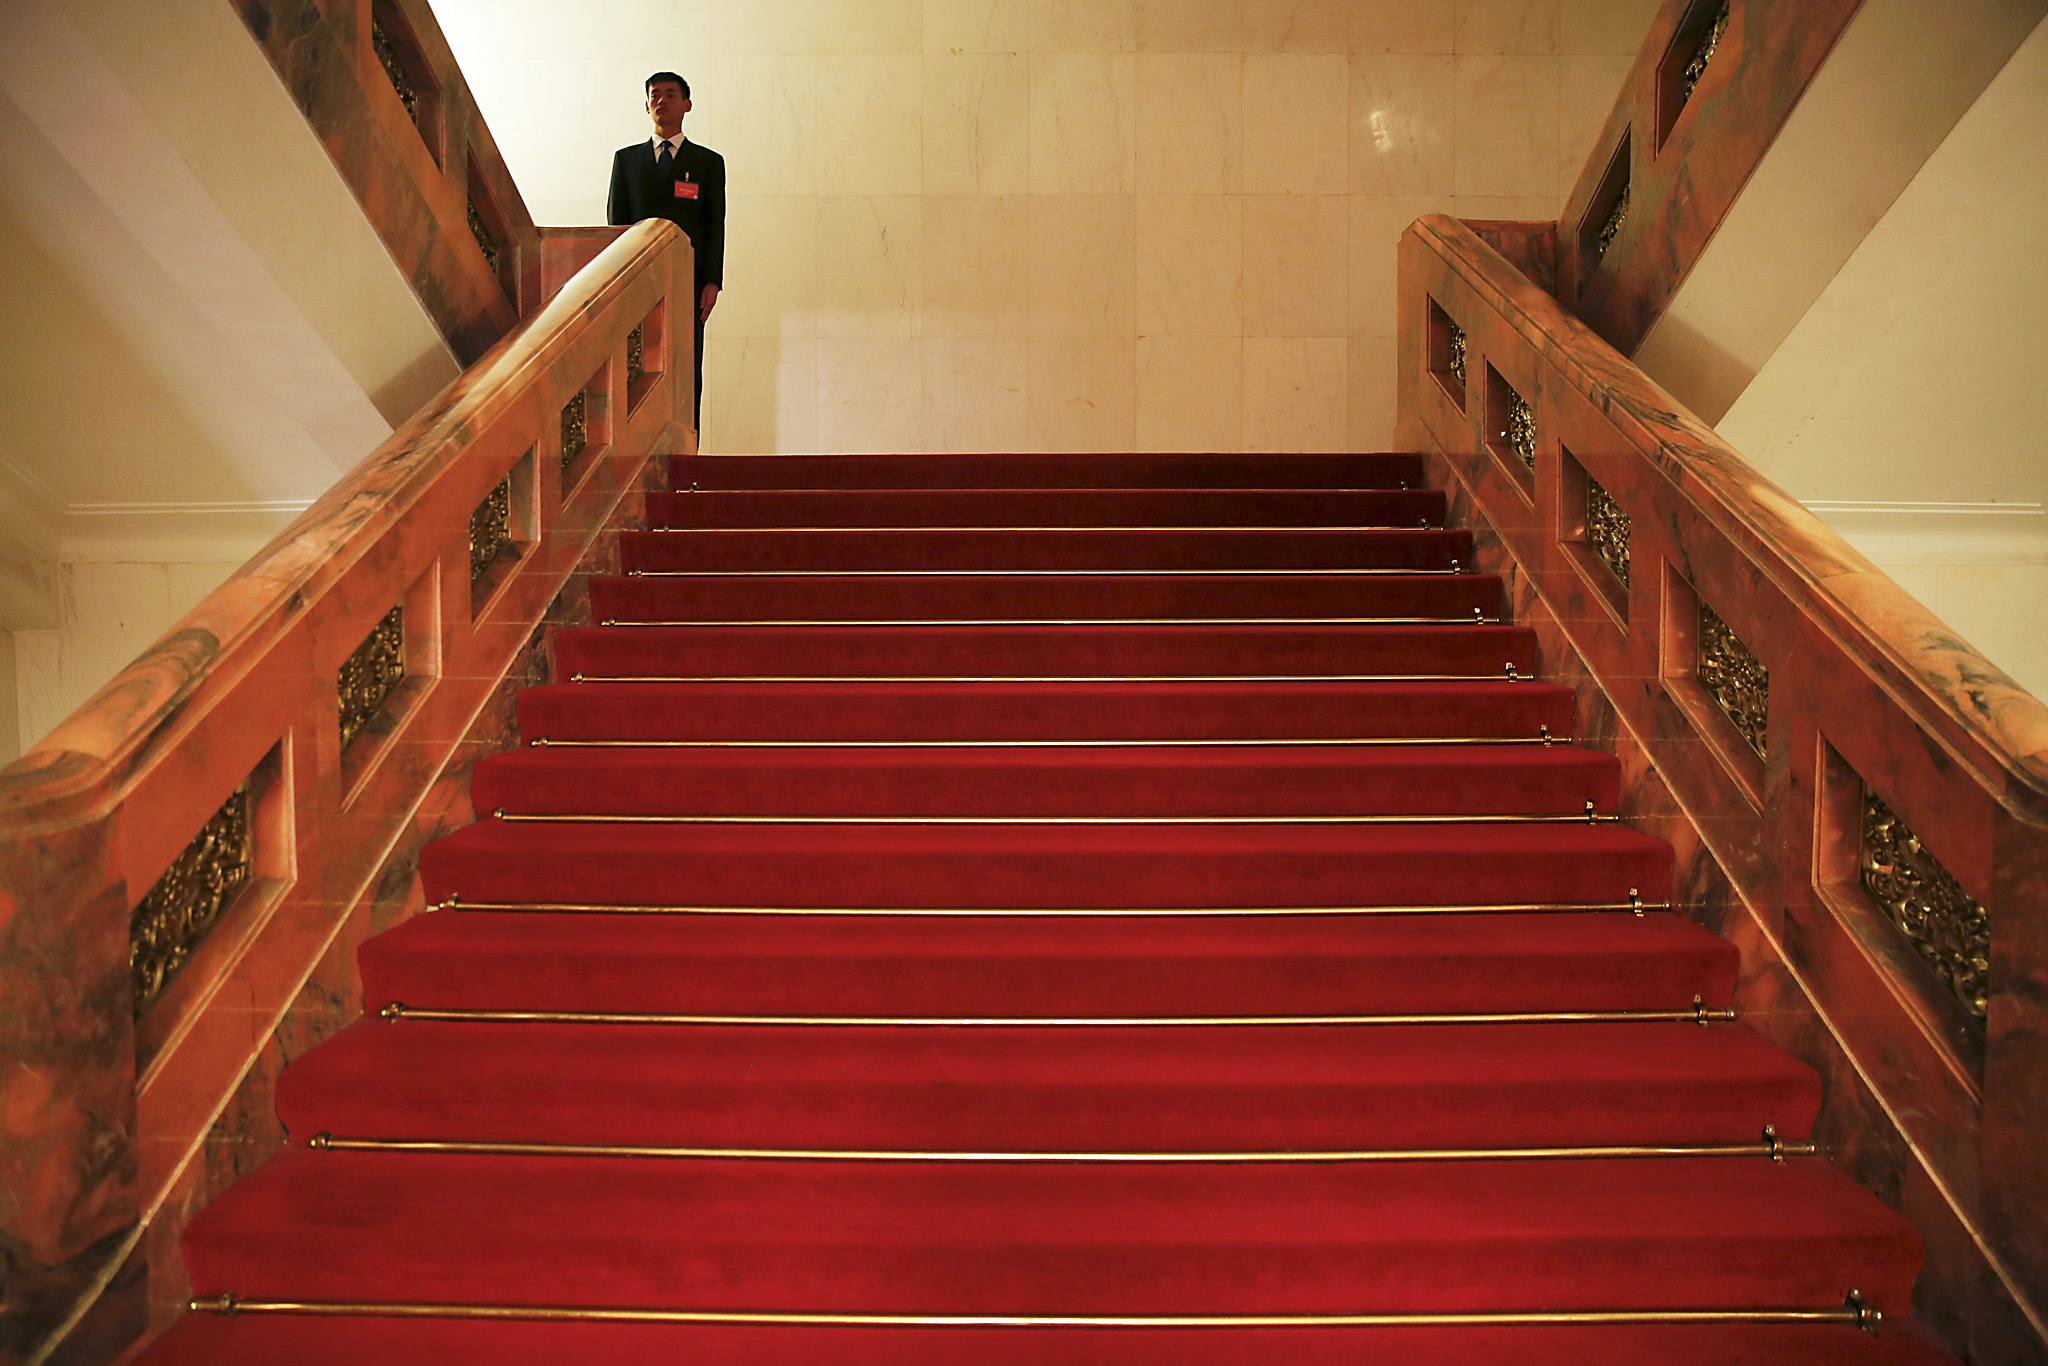 A security agent stands in between floors of the Great Hall of the People in Beijing...A security agent stands in between floors of the Great Hall of the People ahead of annual sessions of the National People's Congress (NPC) and Chinese People's Political Consultative Conference (CPPCC), in Beijing March 2, 2016.   REUTERS/Damir Sagolj